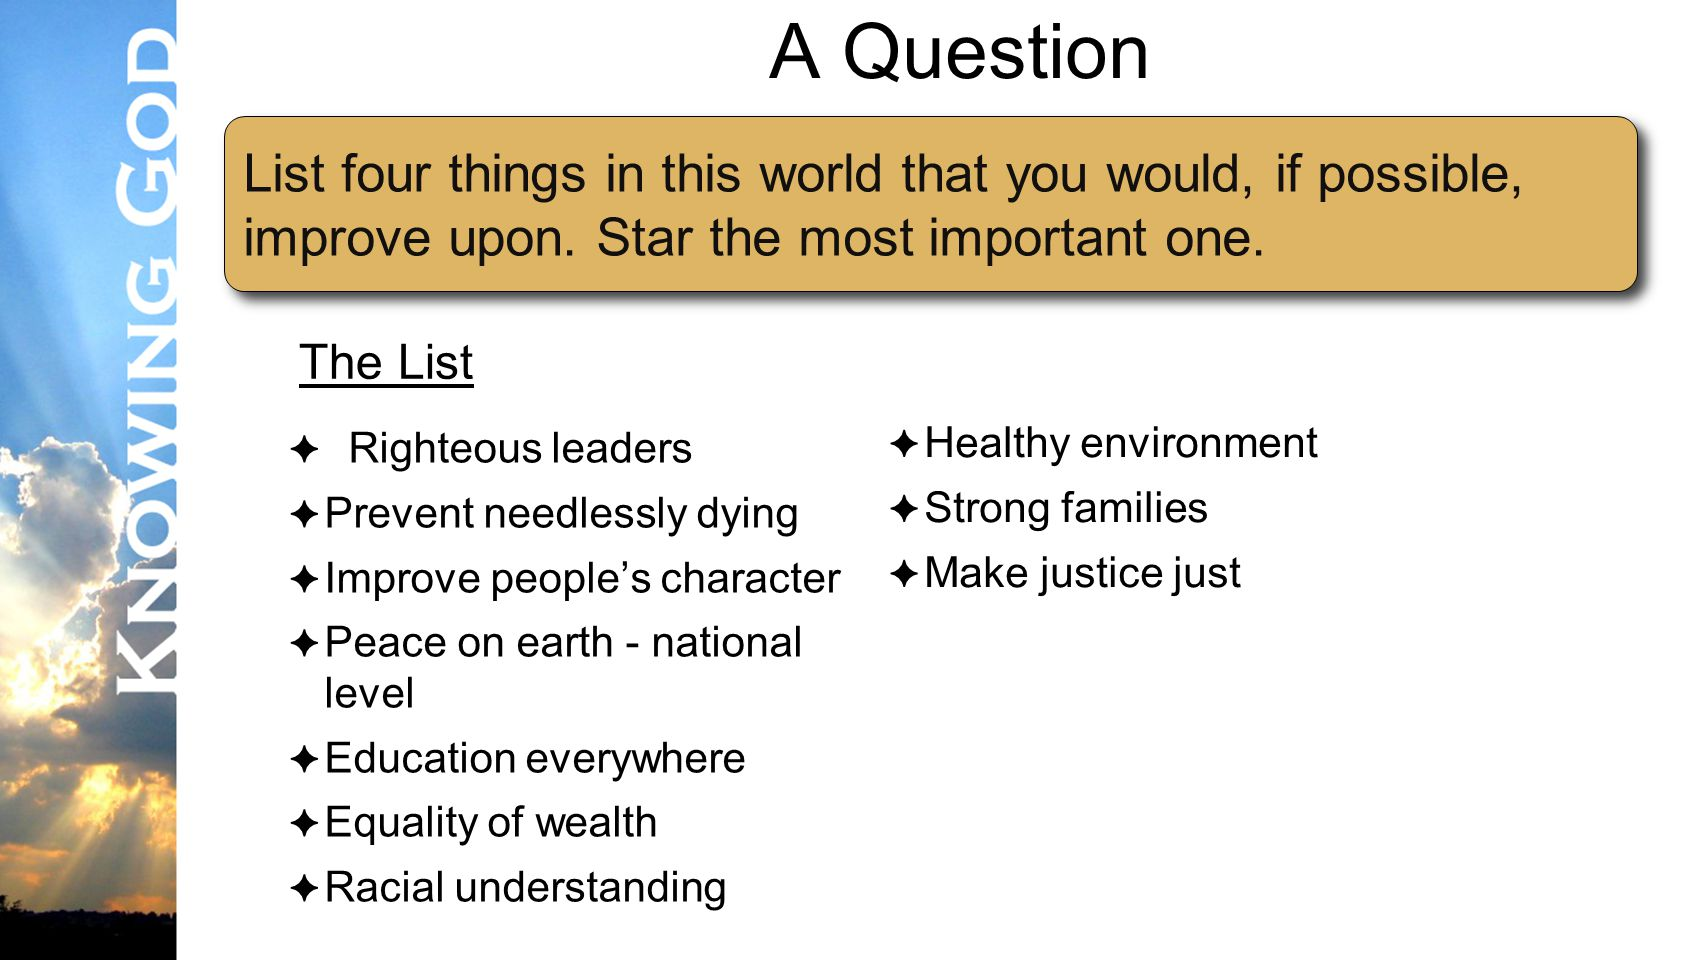 Lesson #3 A Question ✦ Righteous leaders ✦ Prevent needlessly dying ✦ Improve people's character ✦ Peace on earth - national level ✦ Education everywhere ✦ Equality of wealth ✦ Racial understanding List four things in this world that you would, if possible, improve upon.